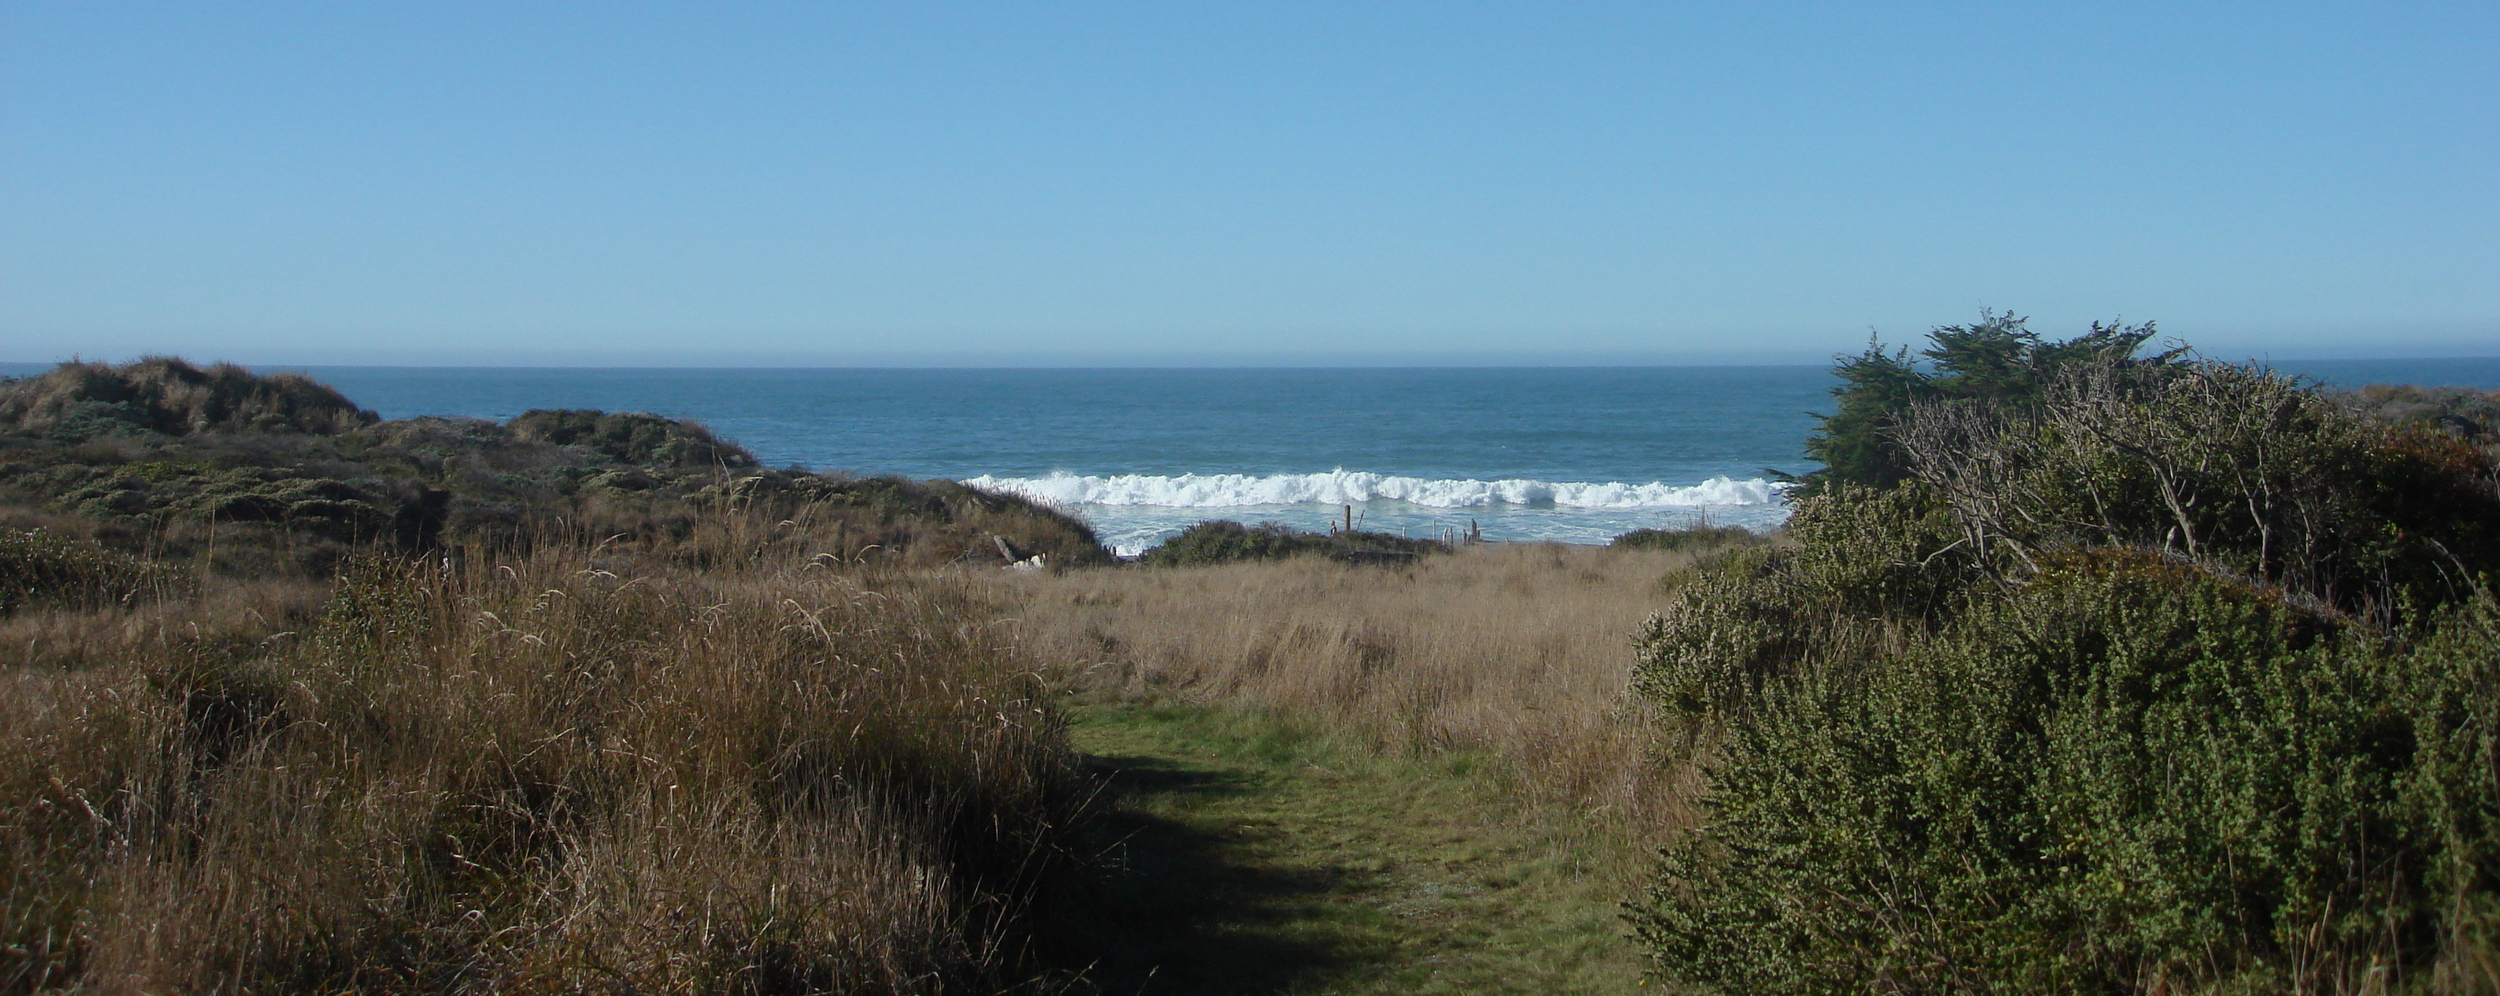 AWE seminars take place in the healing environment of The Sea Ranch, CA.